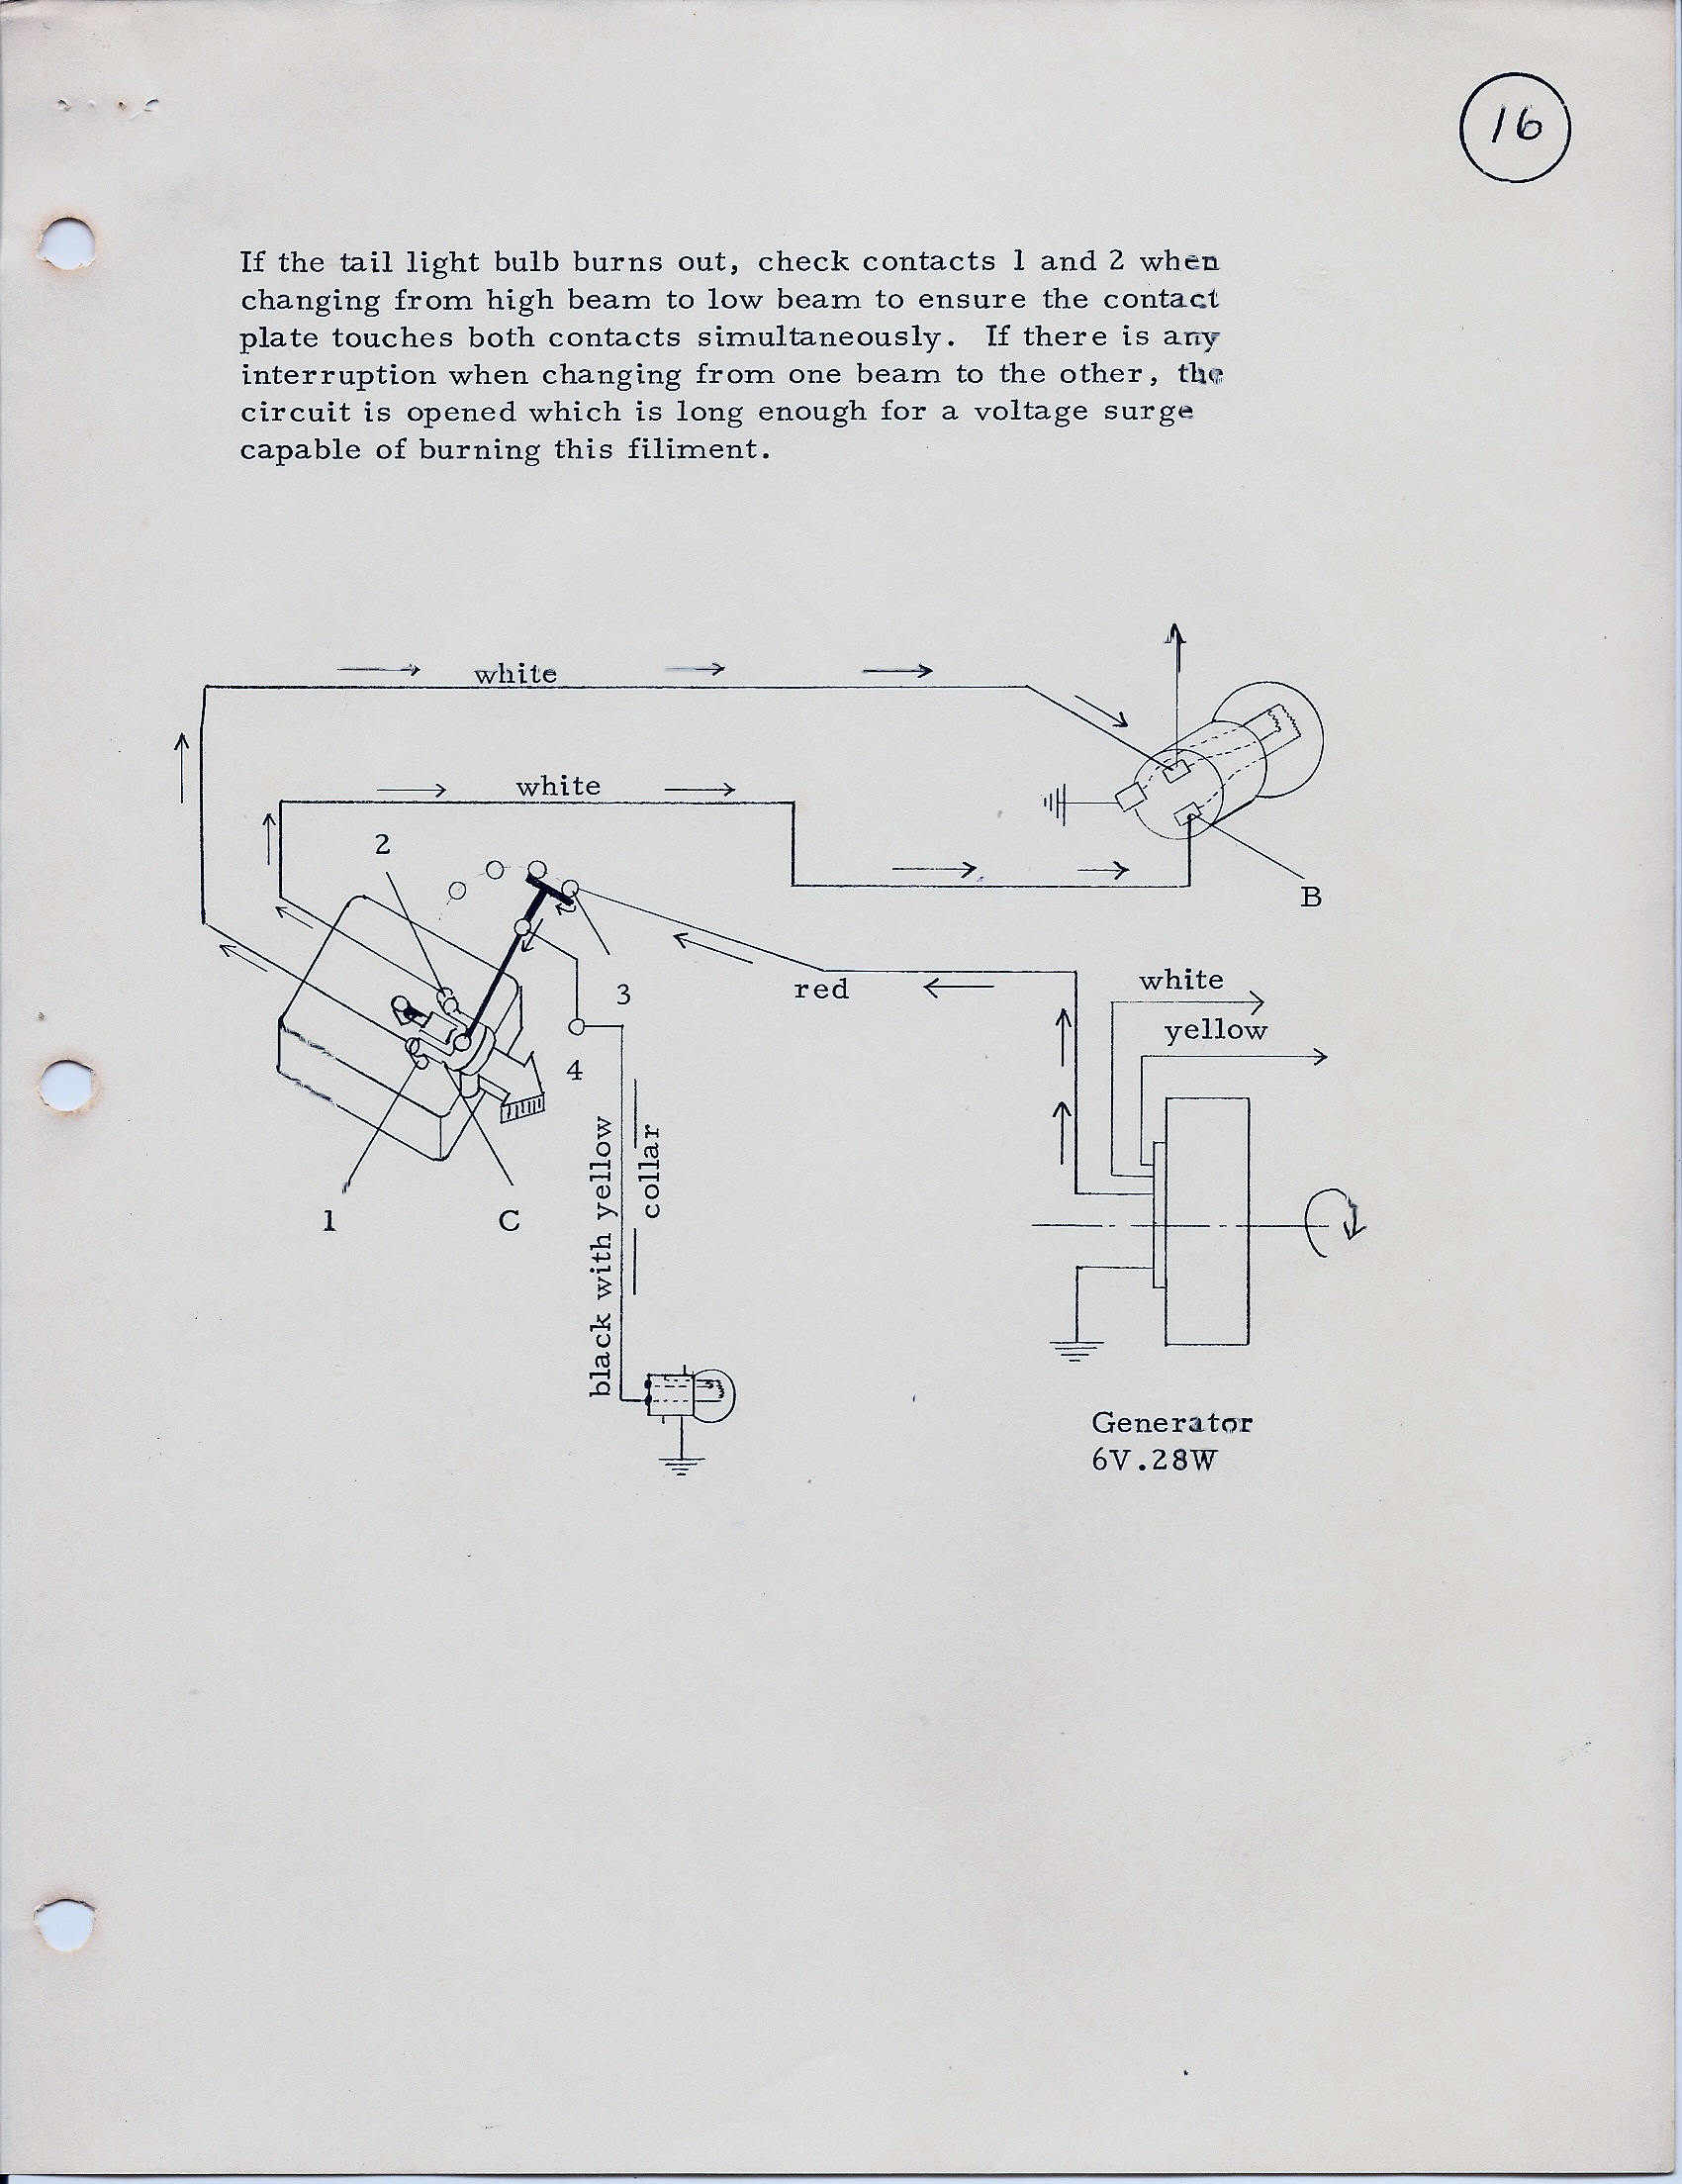 Ducati Singles Technical Information By Monza Wiring Diagram And Sebring Recharge Circuit Page 3